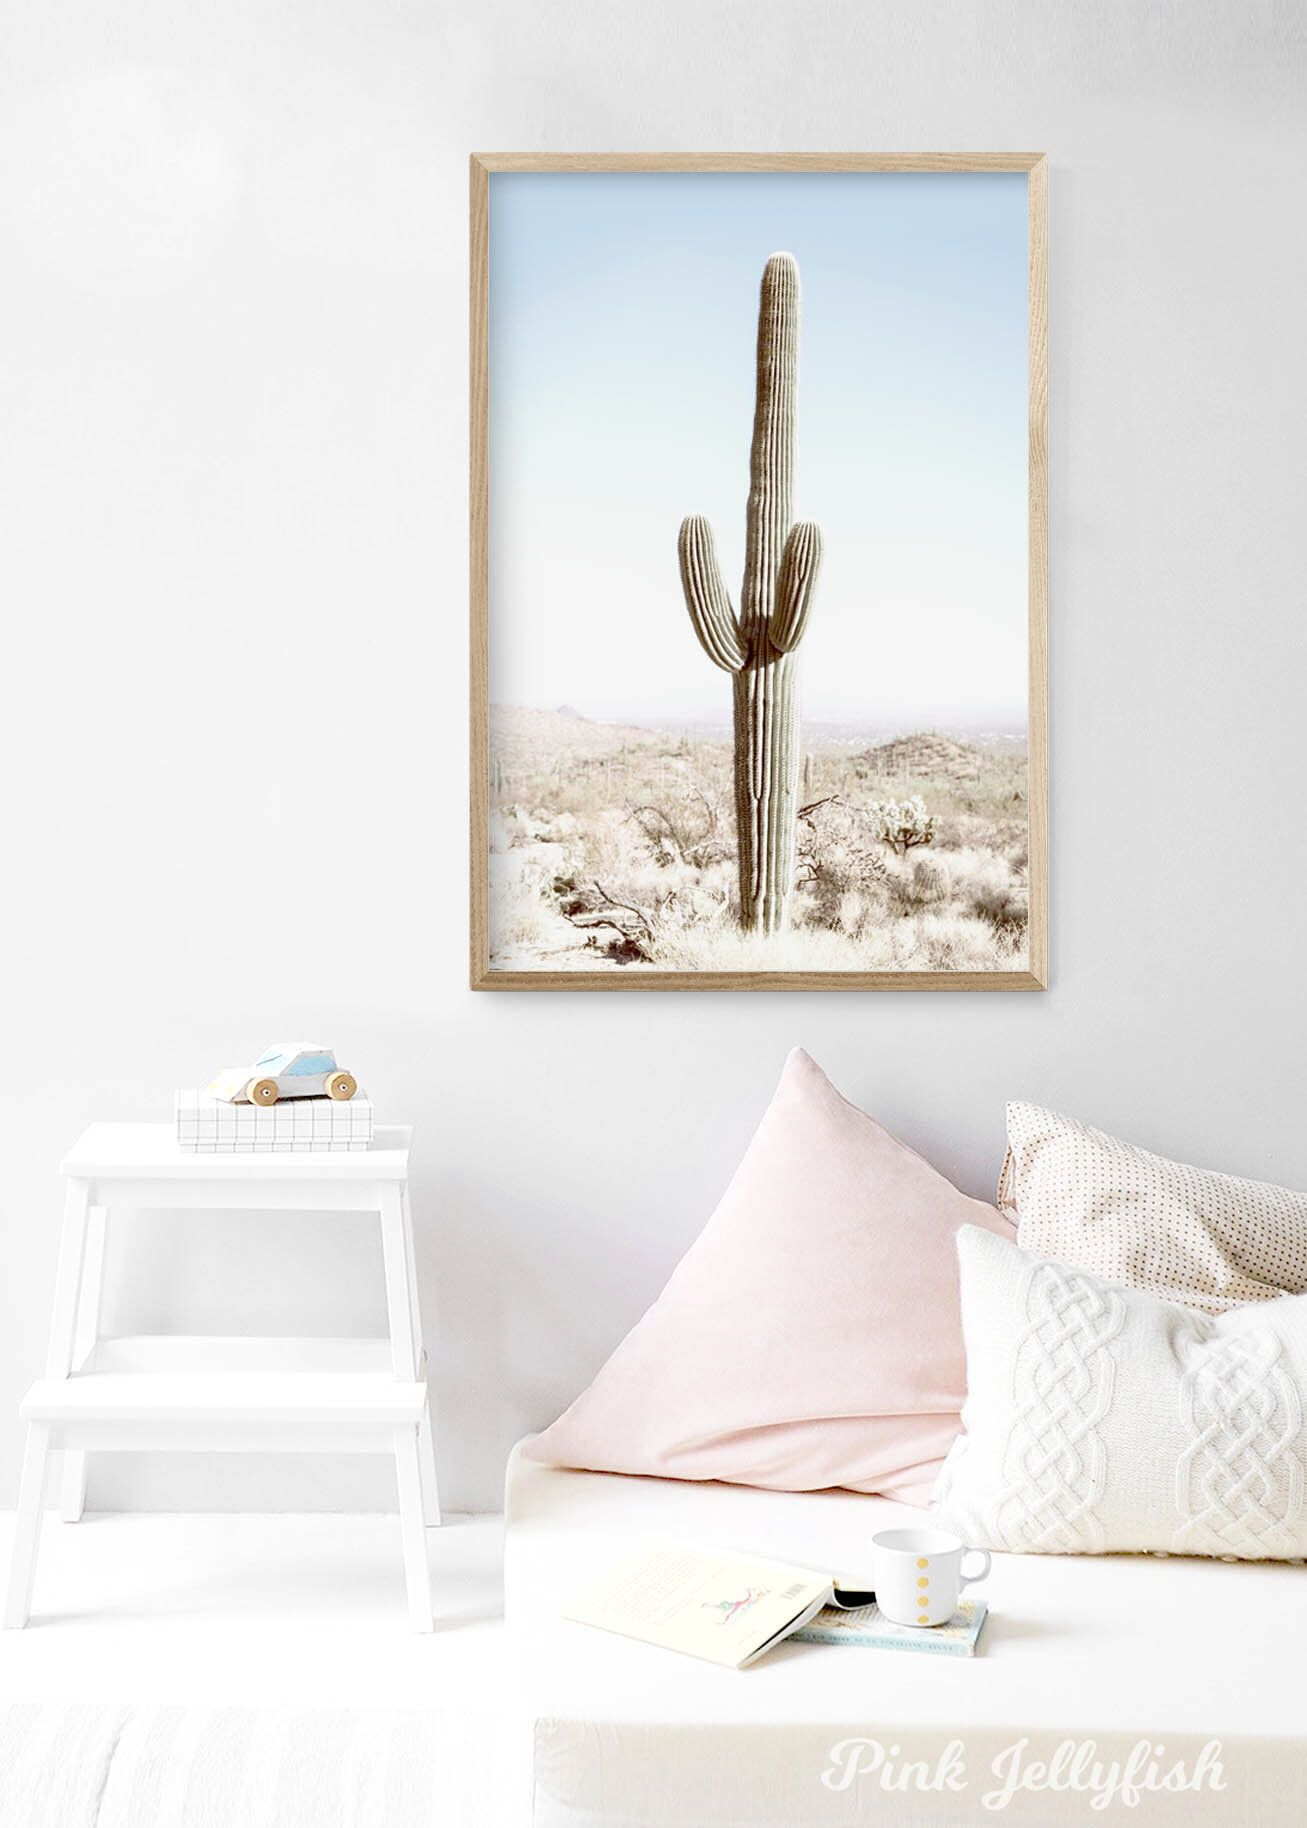 cactus wall art, cactus print, botanical print, cactus poster, desert print, Australia, cacti print, home decor is part of Cactus decor Hanging - 2uL7Zr4 Great care is taken to print your selected image, carefully roll and place in a very sturdy cardboard tube and ship direct to you